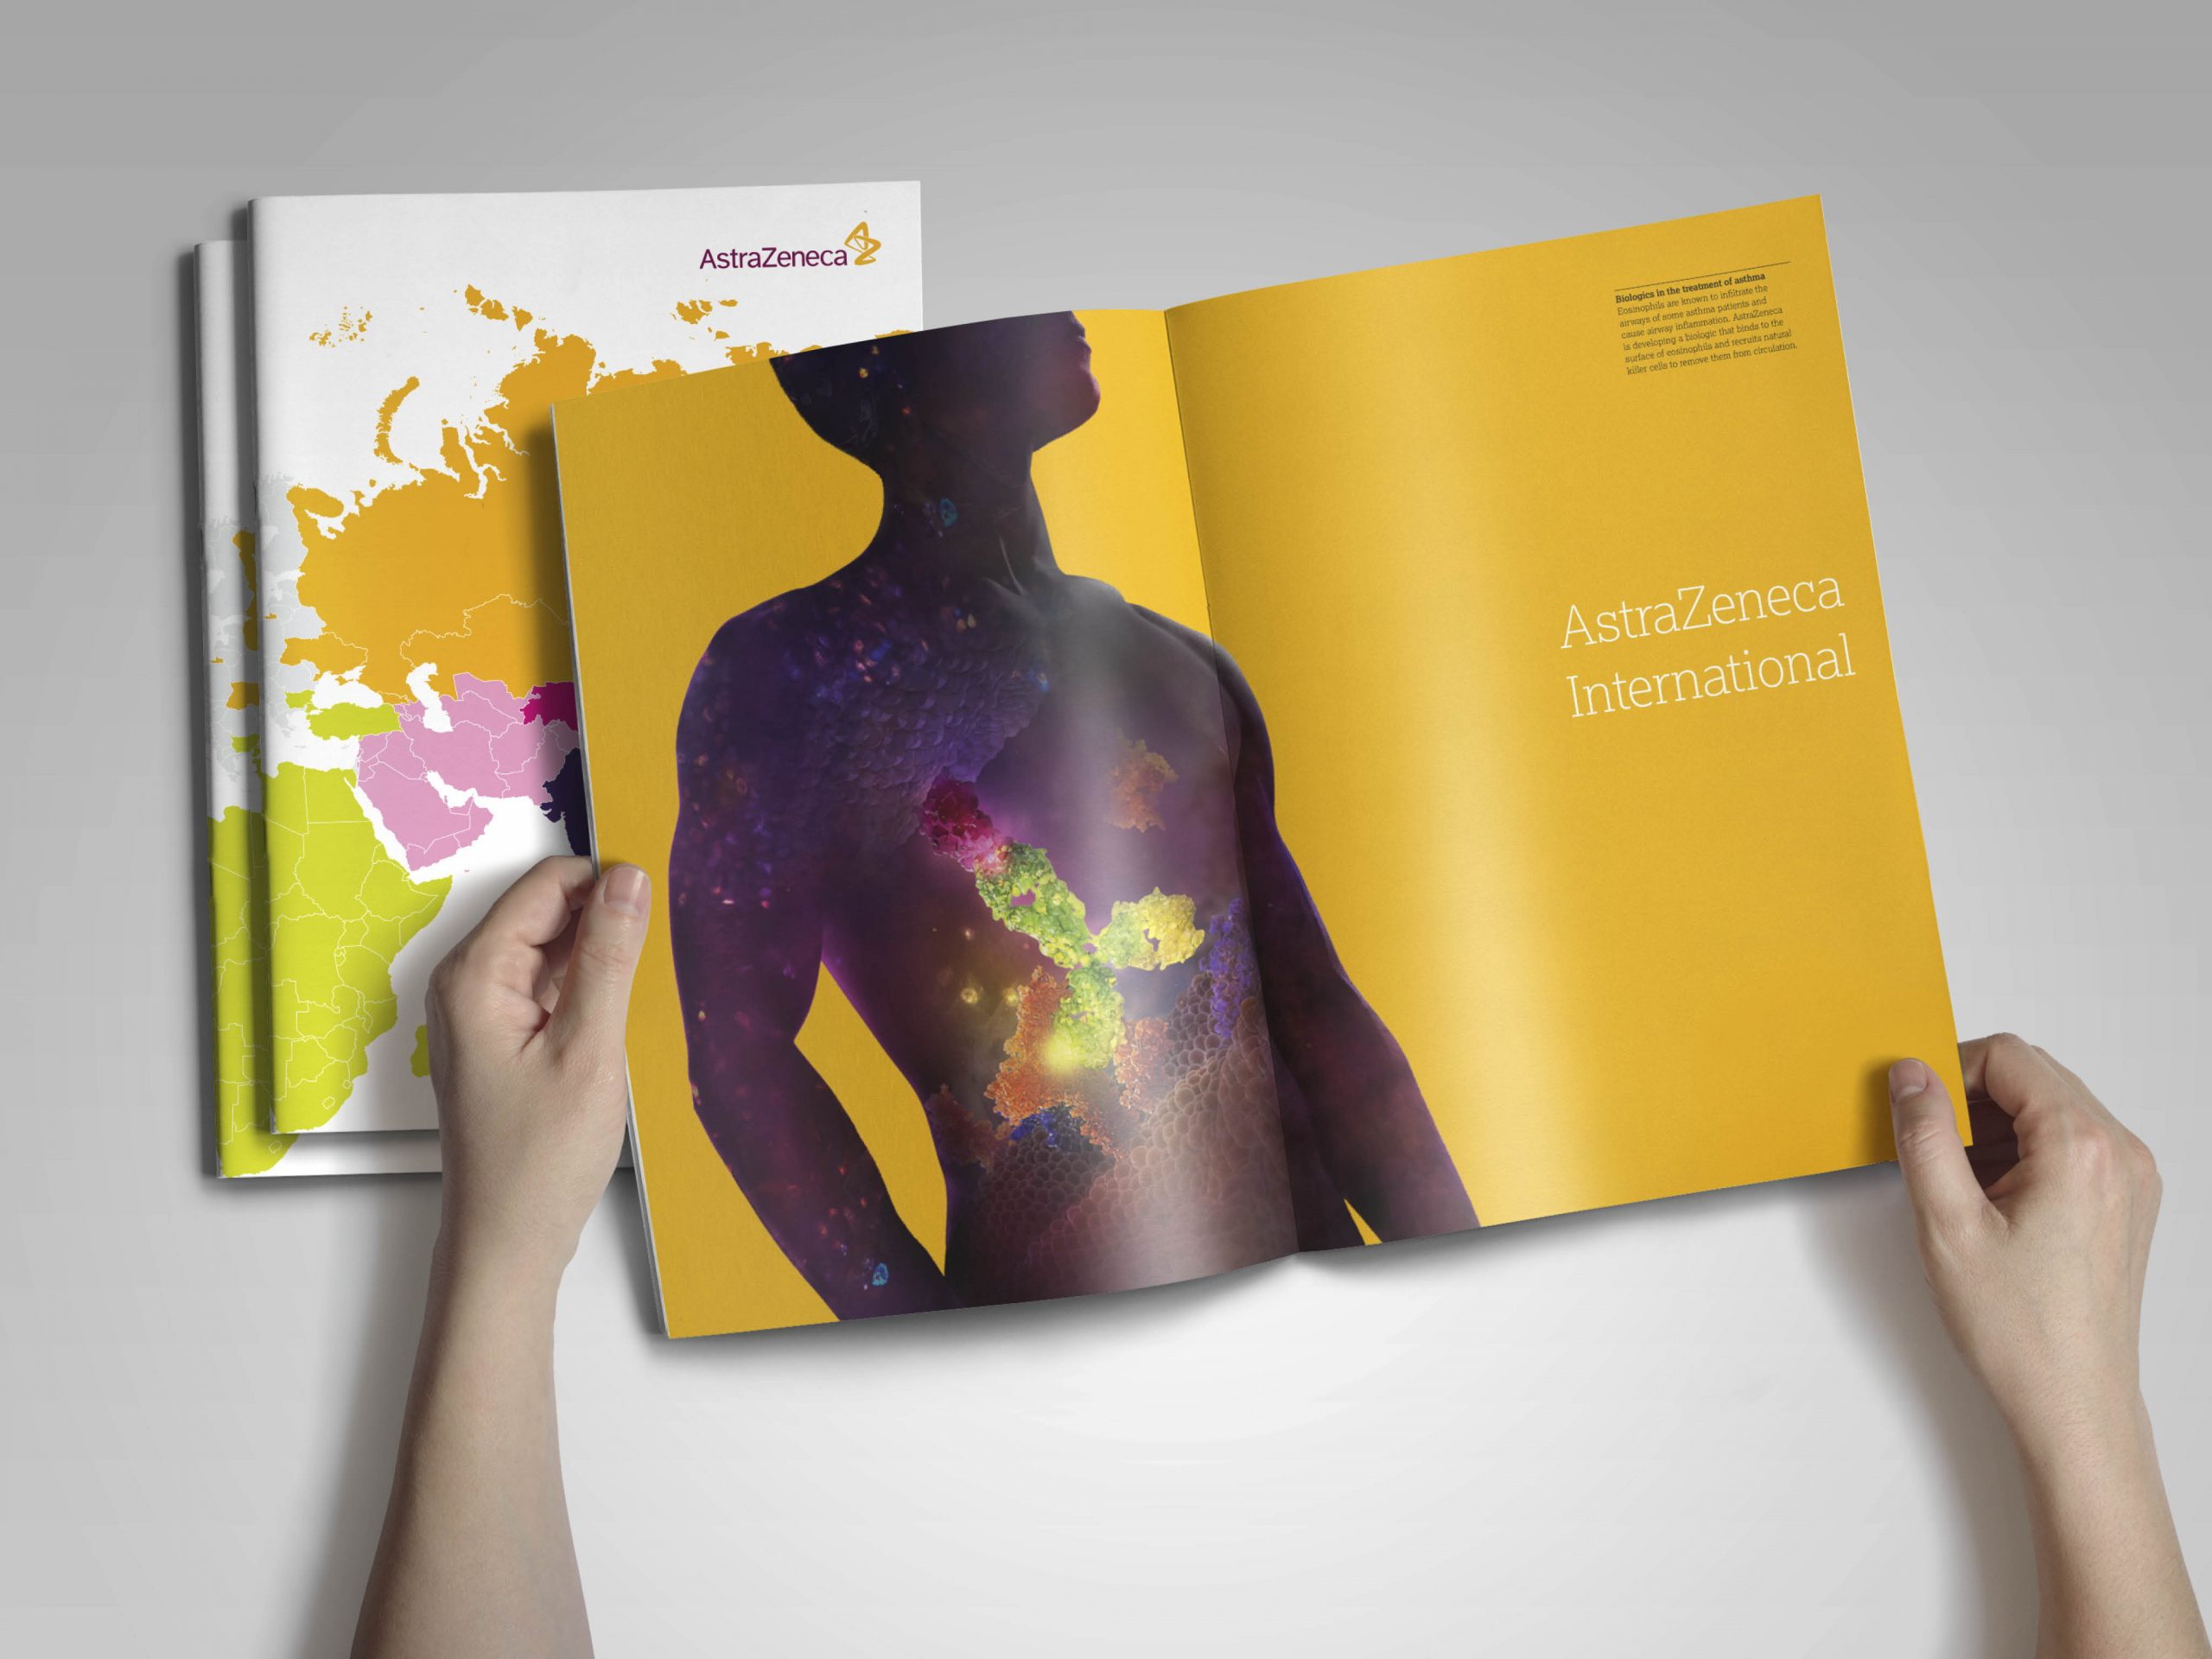 1974-AstraZeneca–International-Brochure–2